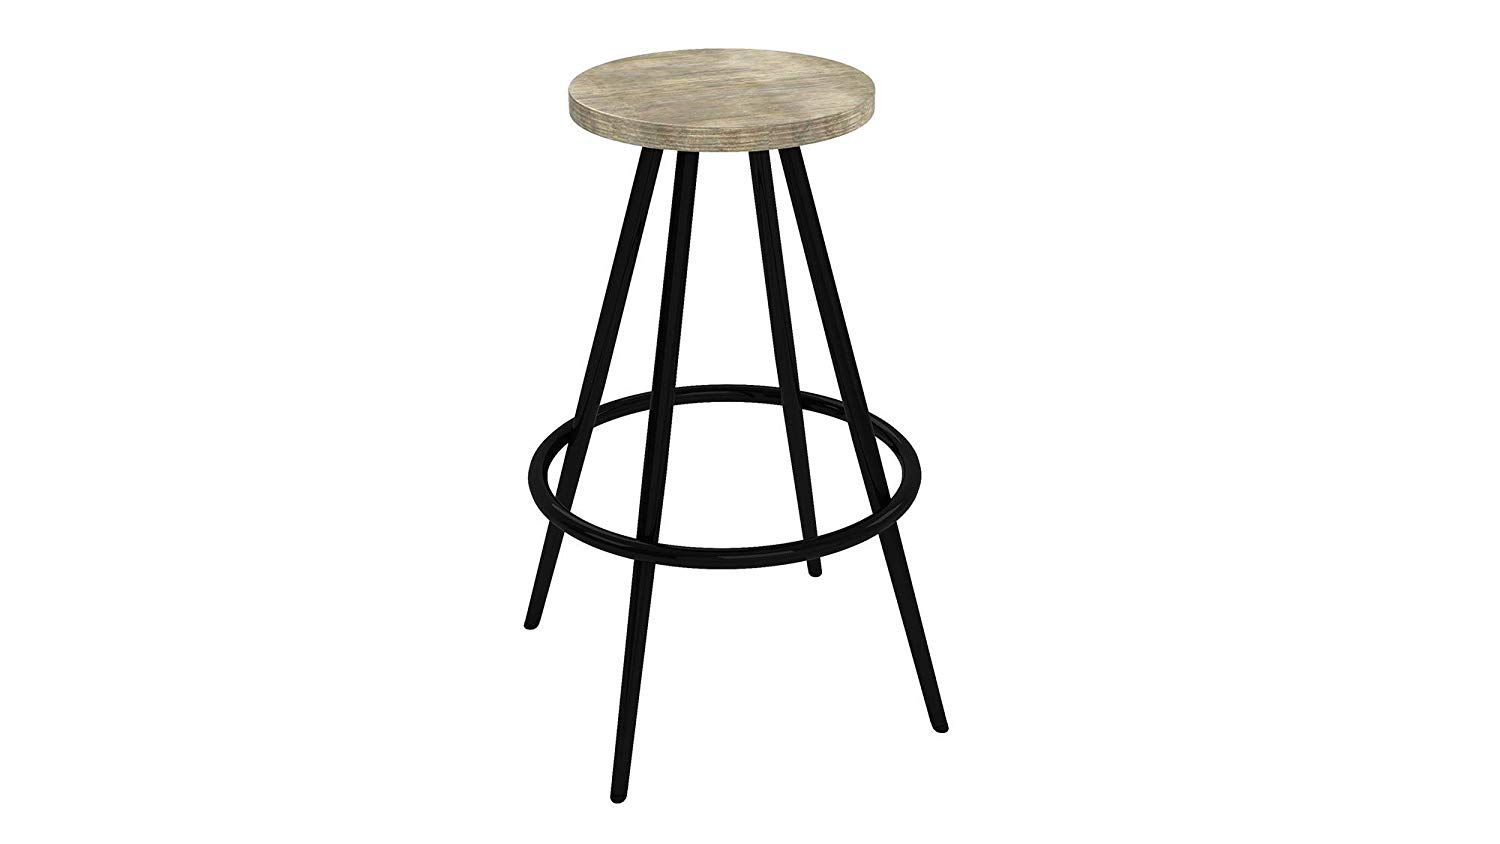 Novogratz Leo Farmhouse 29 5 Inch Bar Stool With Footrest Rustic And Modern Style Black Metal Frame With Gre Grey Wood Black Metal Frame Luxury Dining Tables